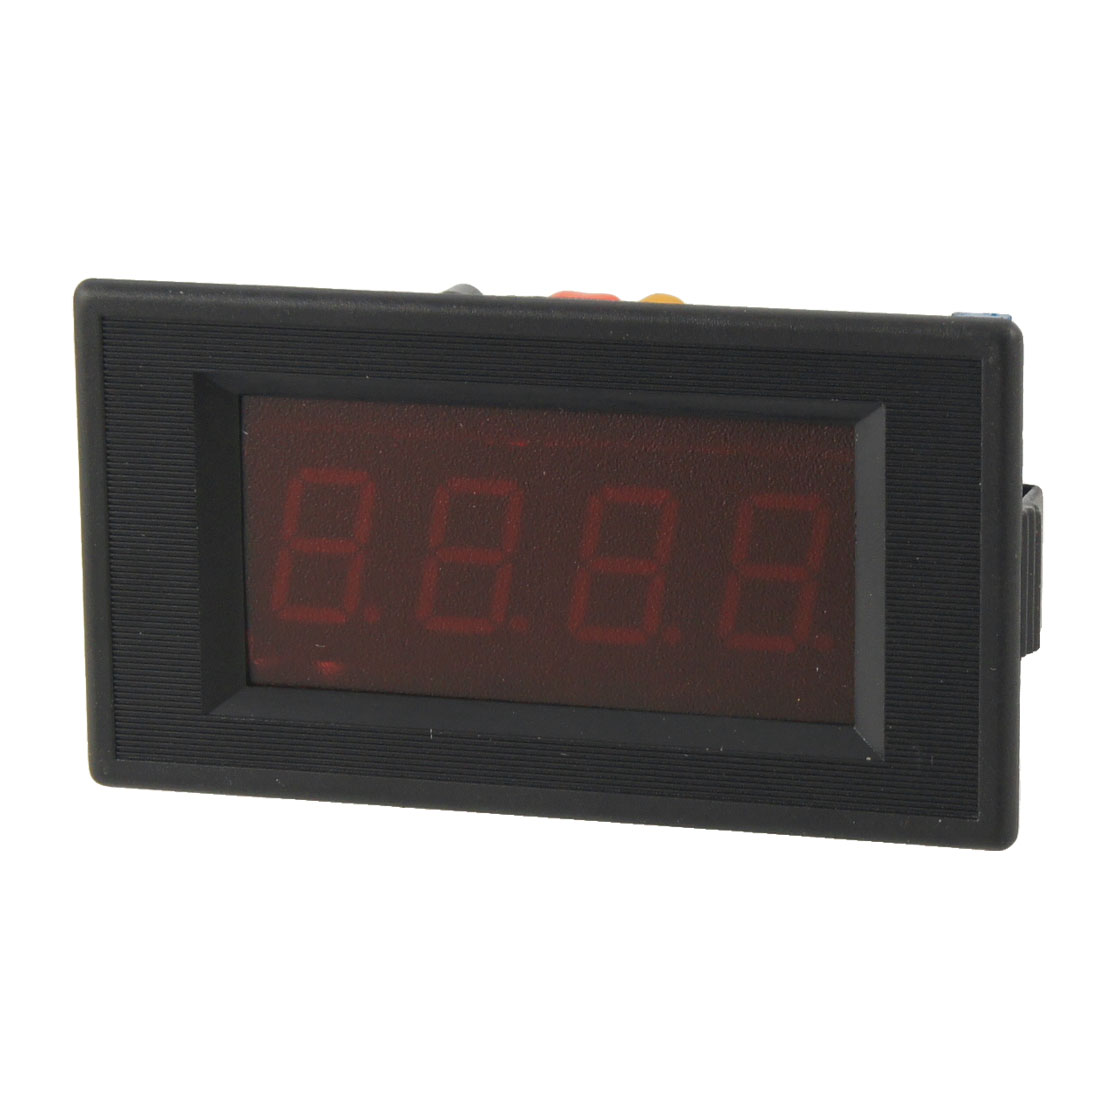 DC 0-100V 3 1/2 Digits Red LED Display Voltage Meter Voltmeter